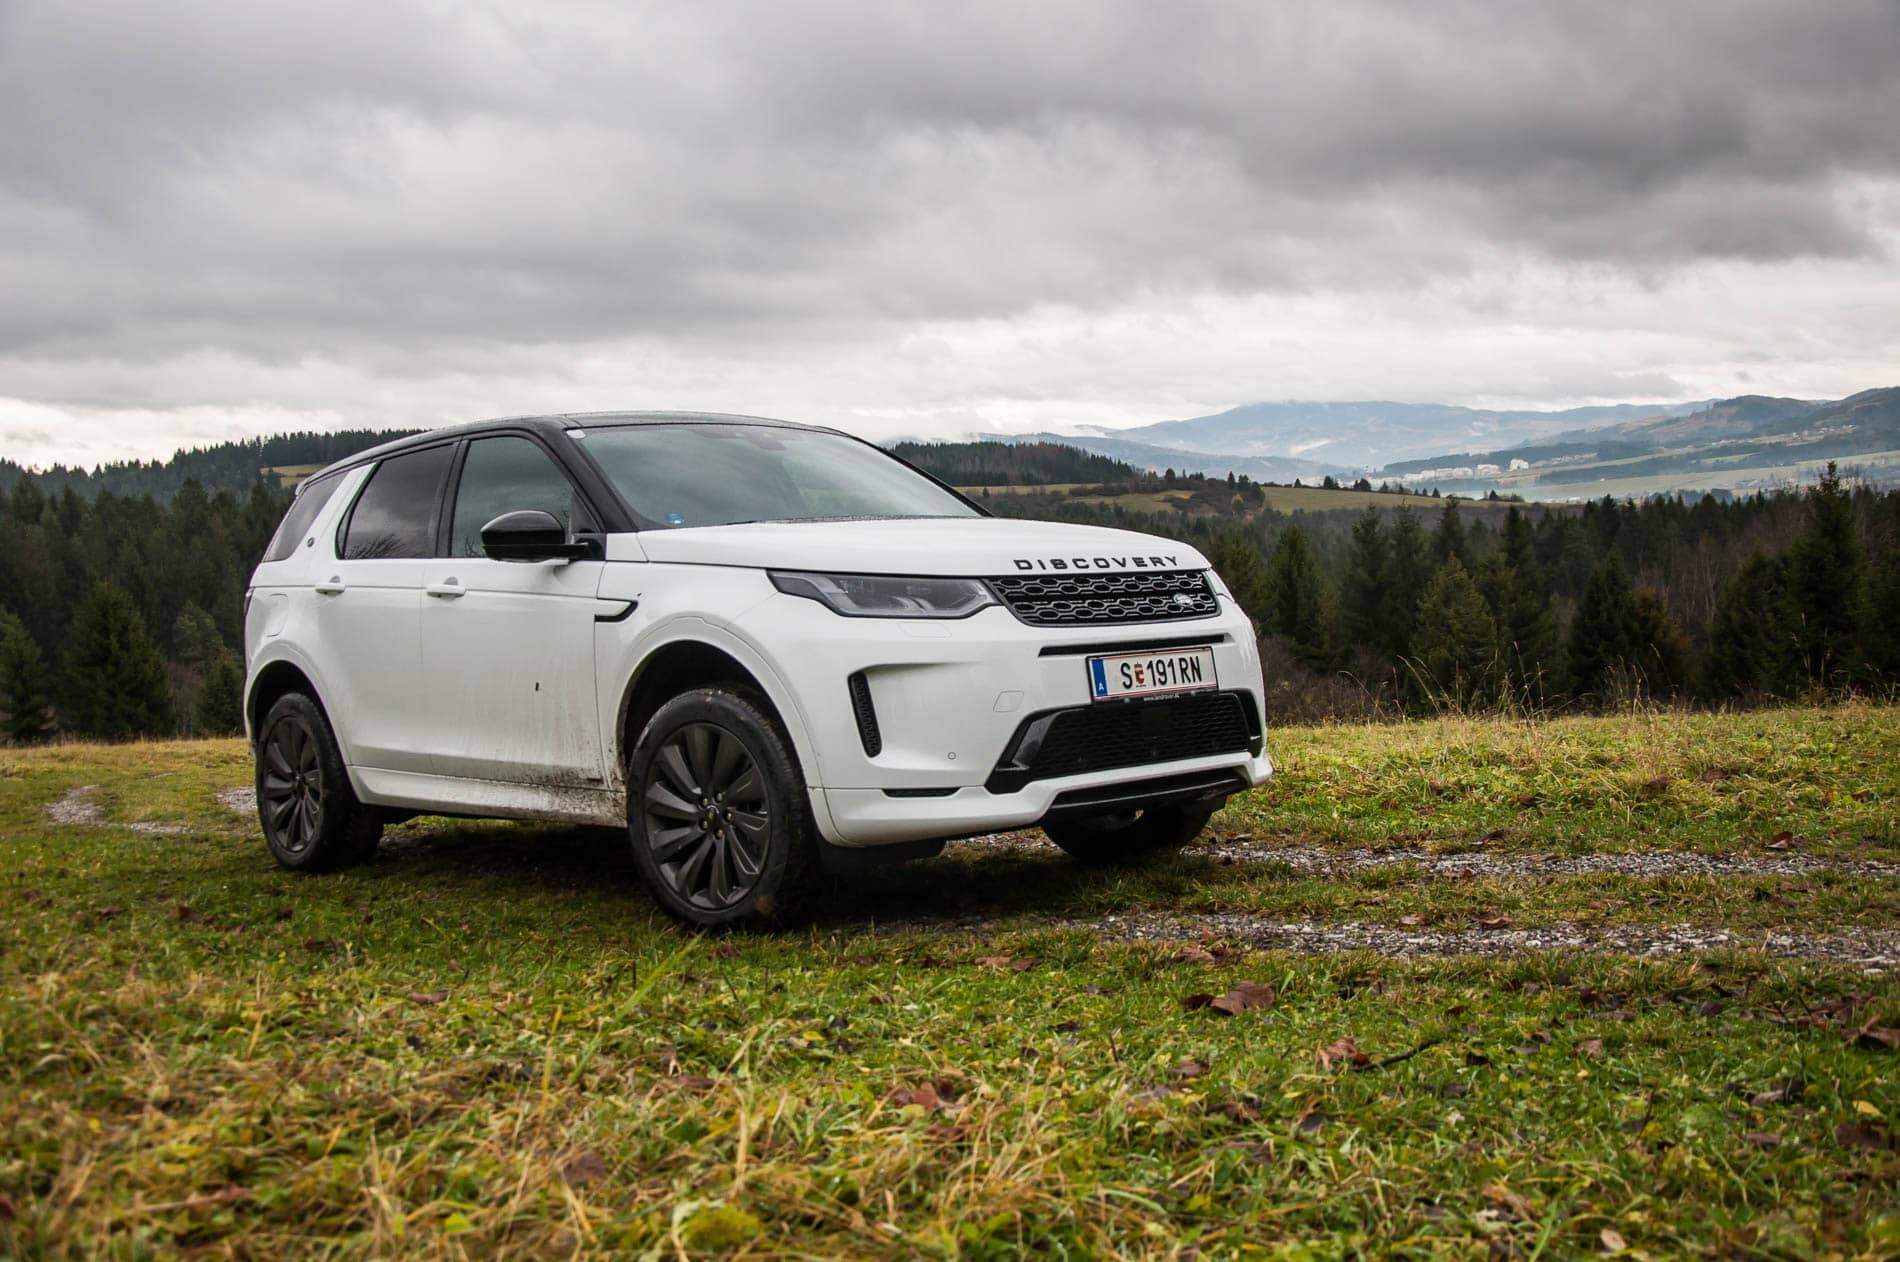 lr discovery sport 2020 (36 of 42)